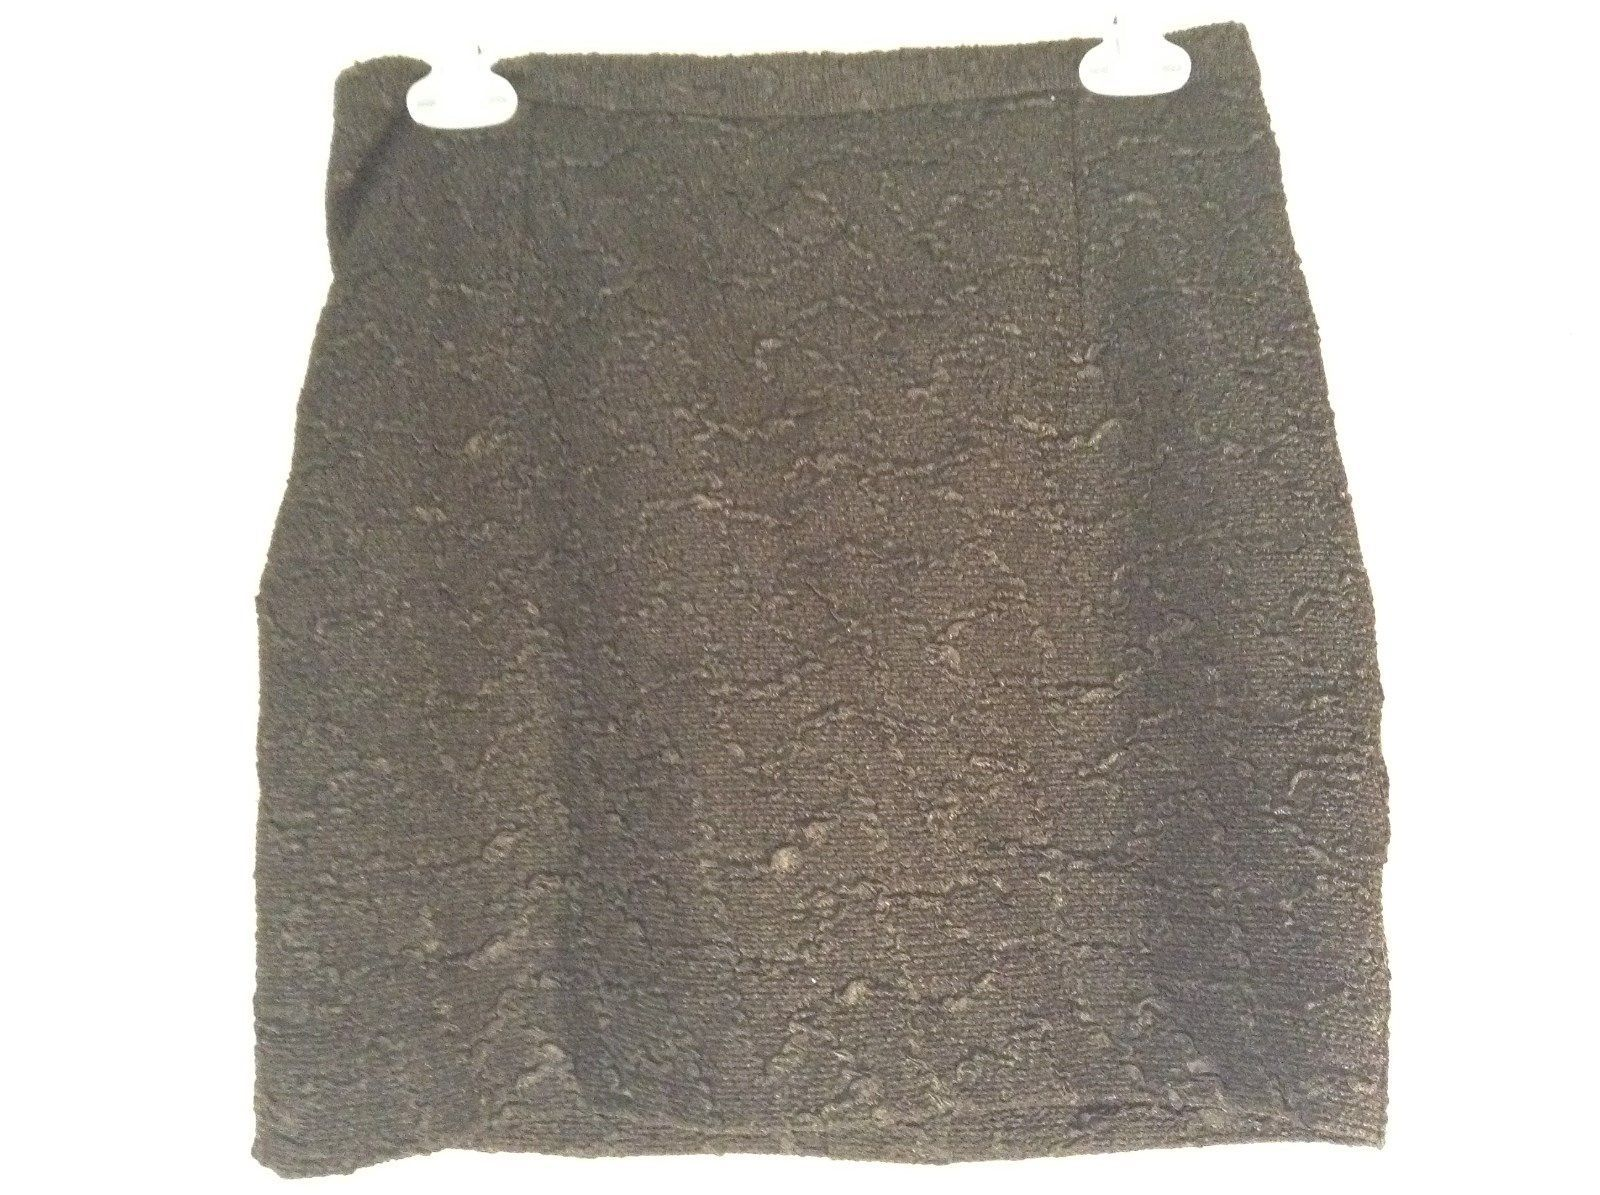 Cute Jet Black H and M Size 8 Skirt with Relief Pattern Gold Tone Front Zipper